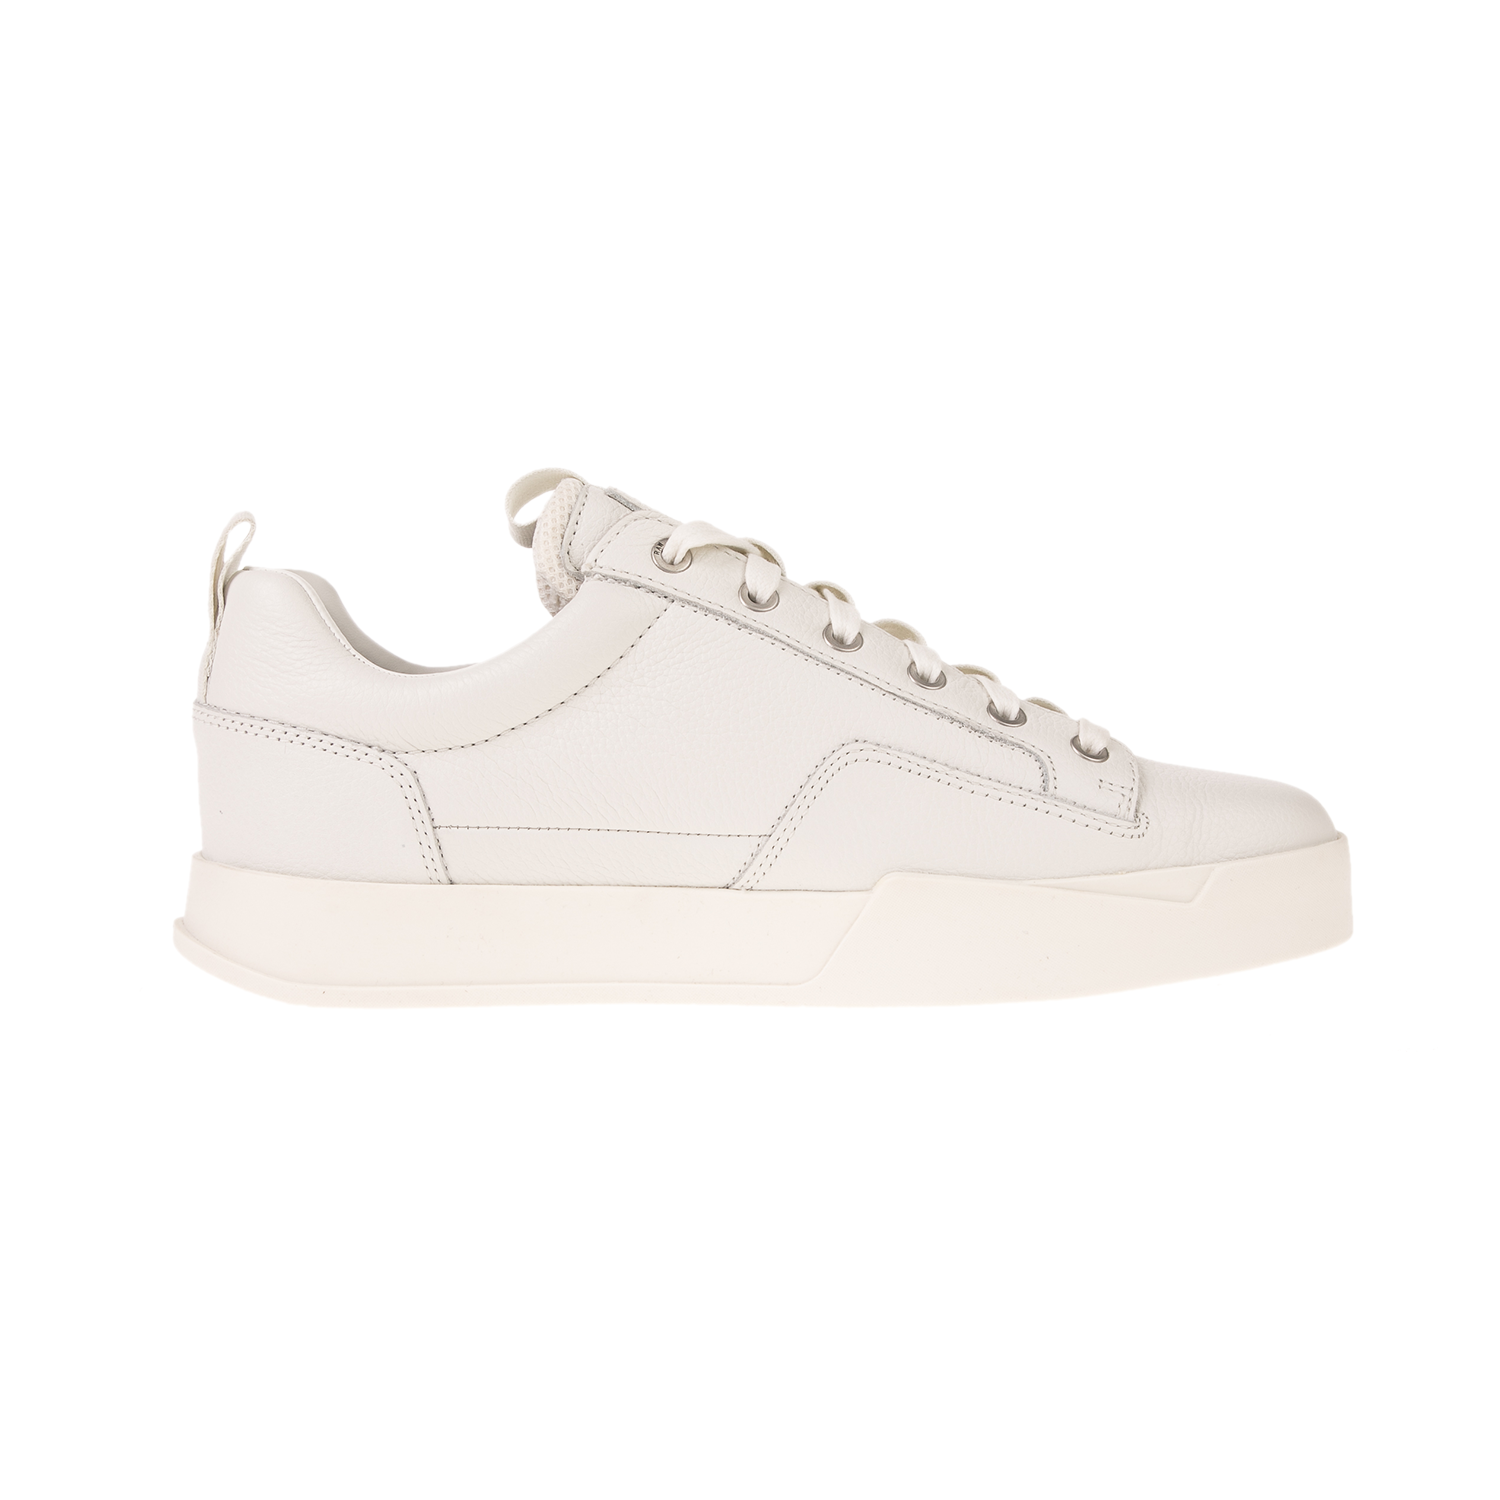 G-STAR RAW – Ανδρικά sneakers G-STAR RAW Rackam Core Low λευκά